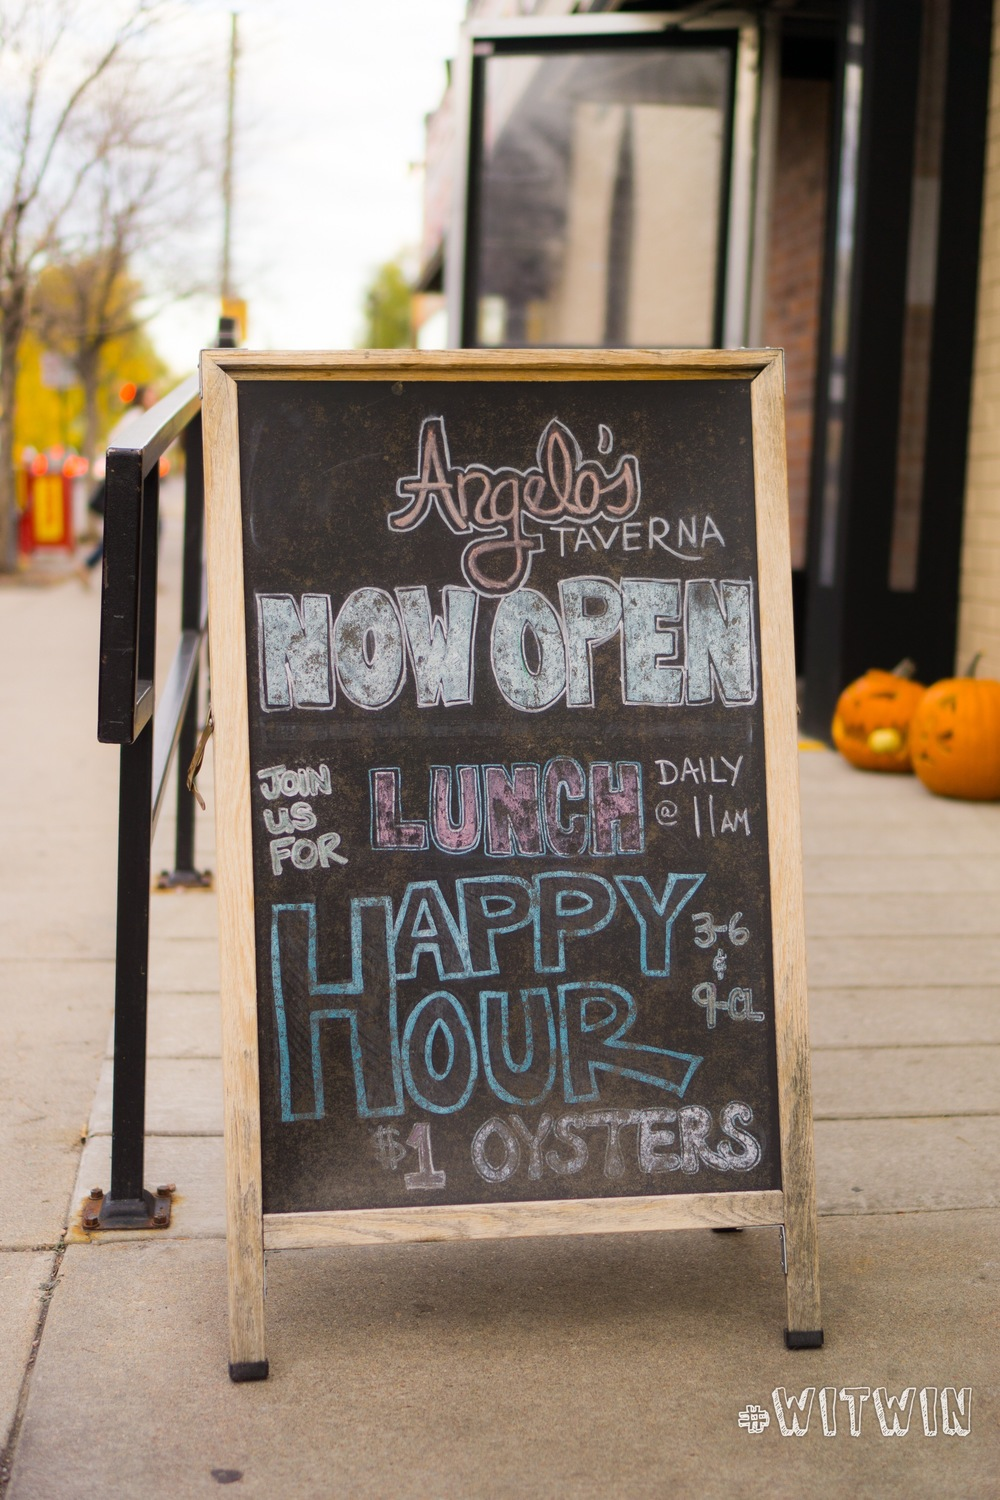 $1 oysters at Angelo's Happy Hour from 3 - 6pm and 9pm - close daily